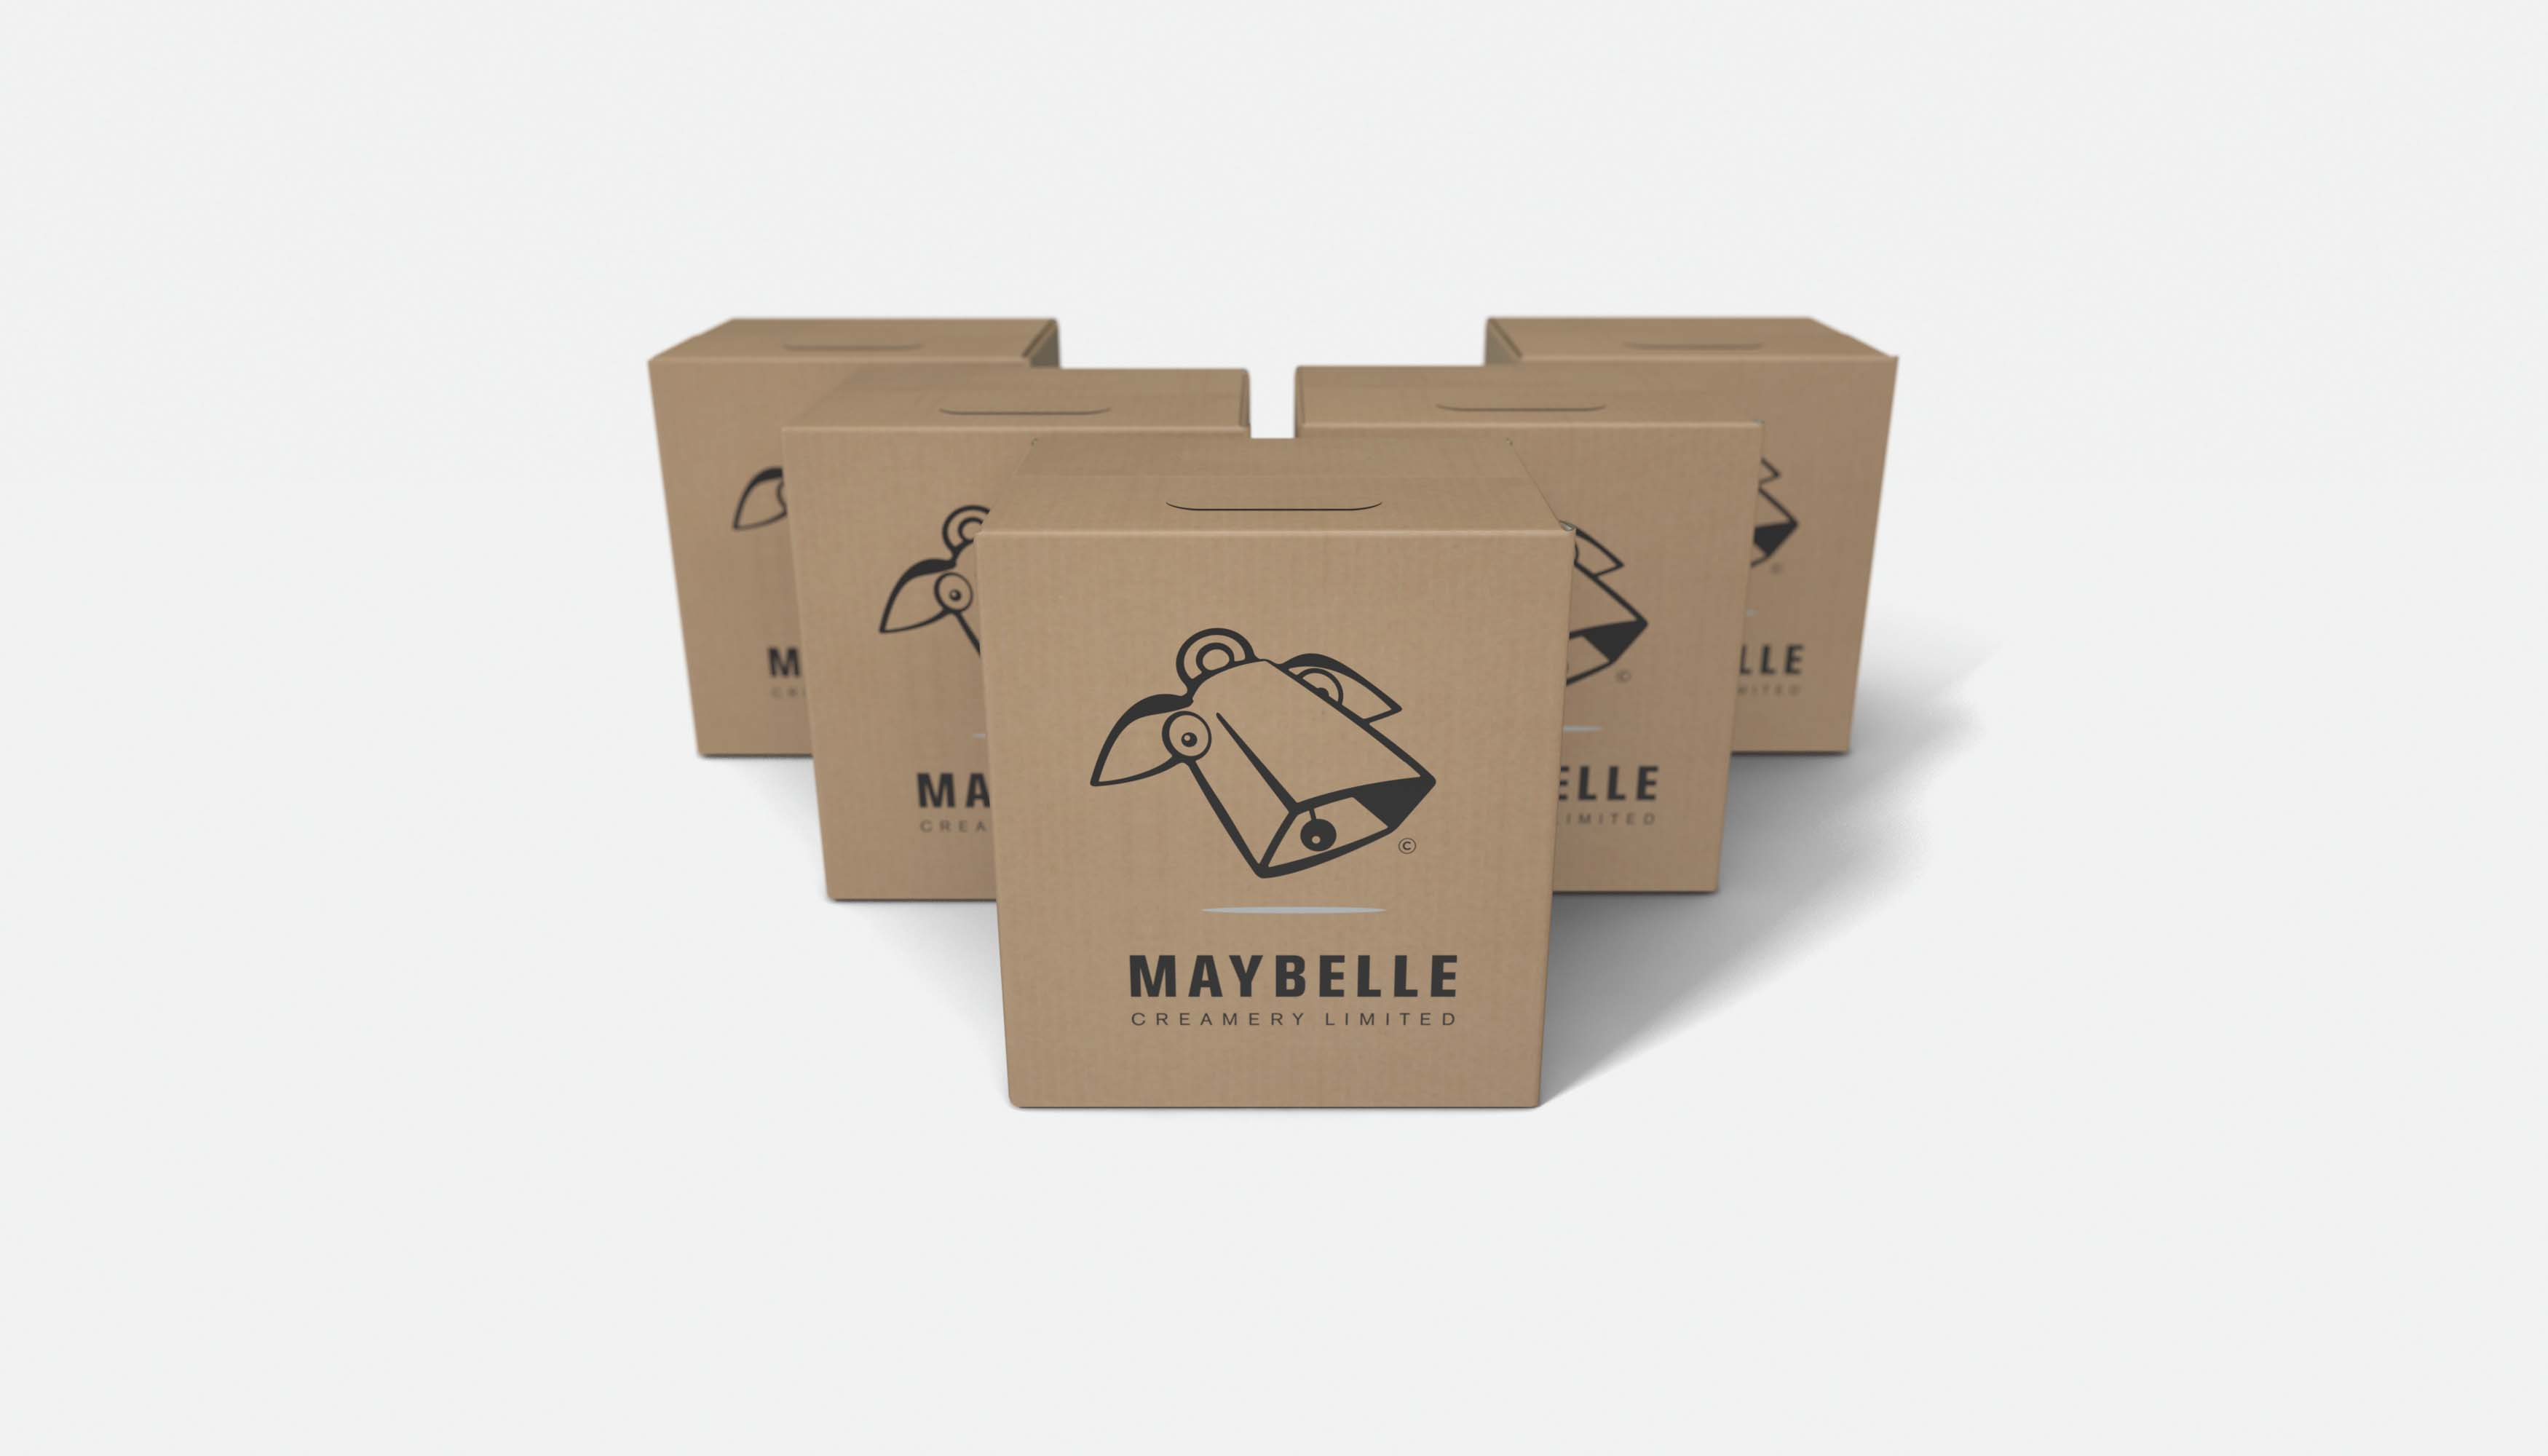 MAYBELLE CREAMERY & Co.